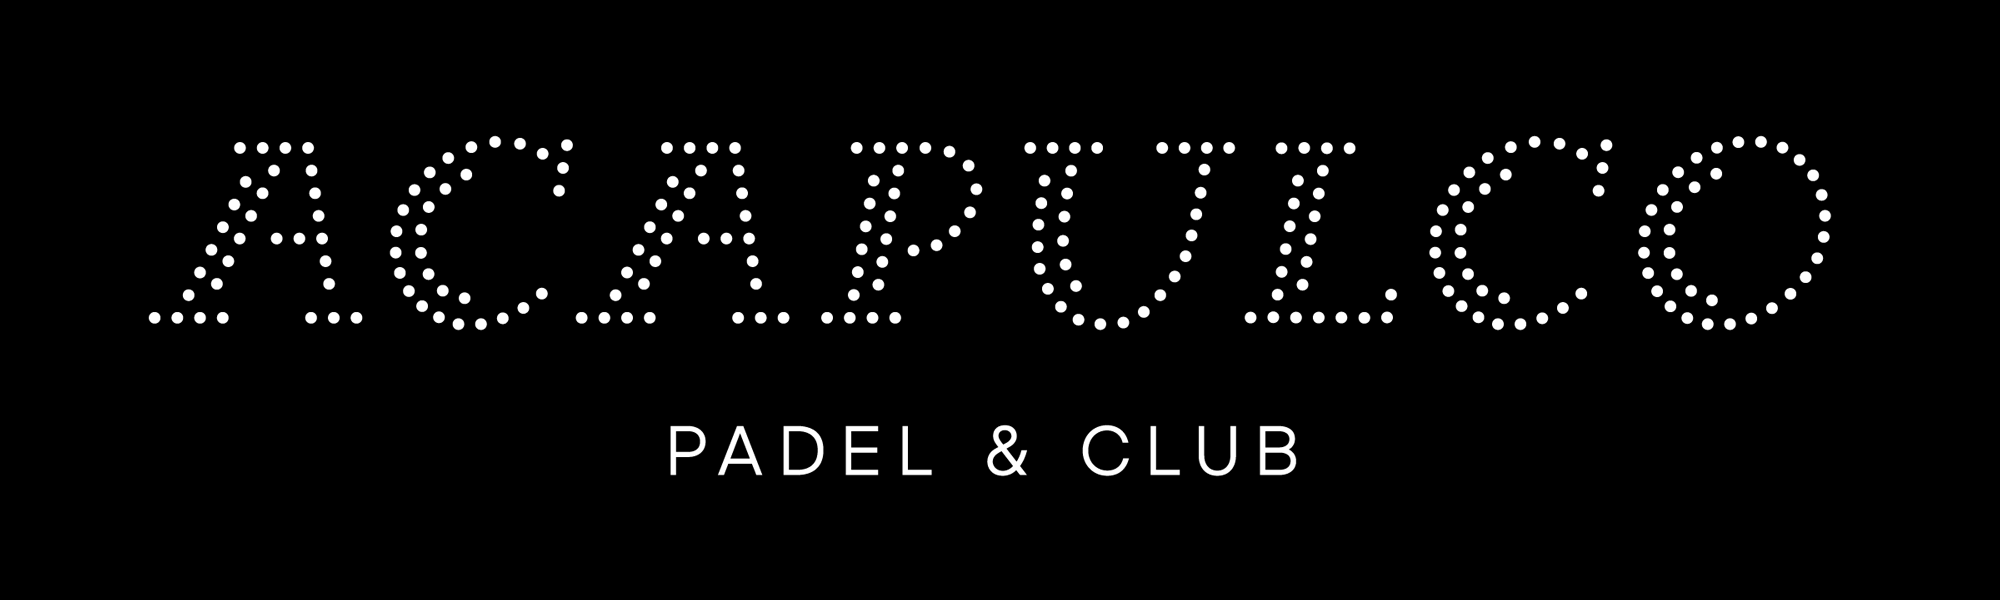 New Logo and Identity for Acapulco Padel & Club by Bedow